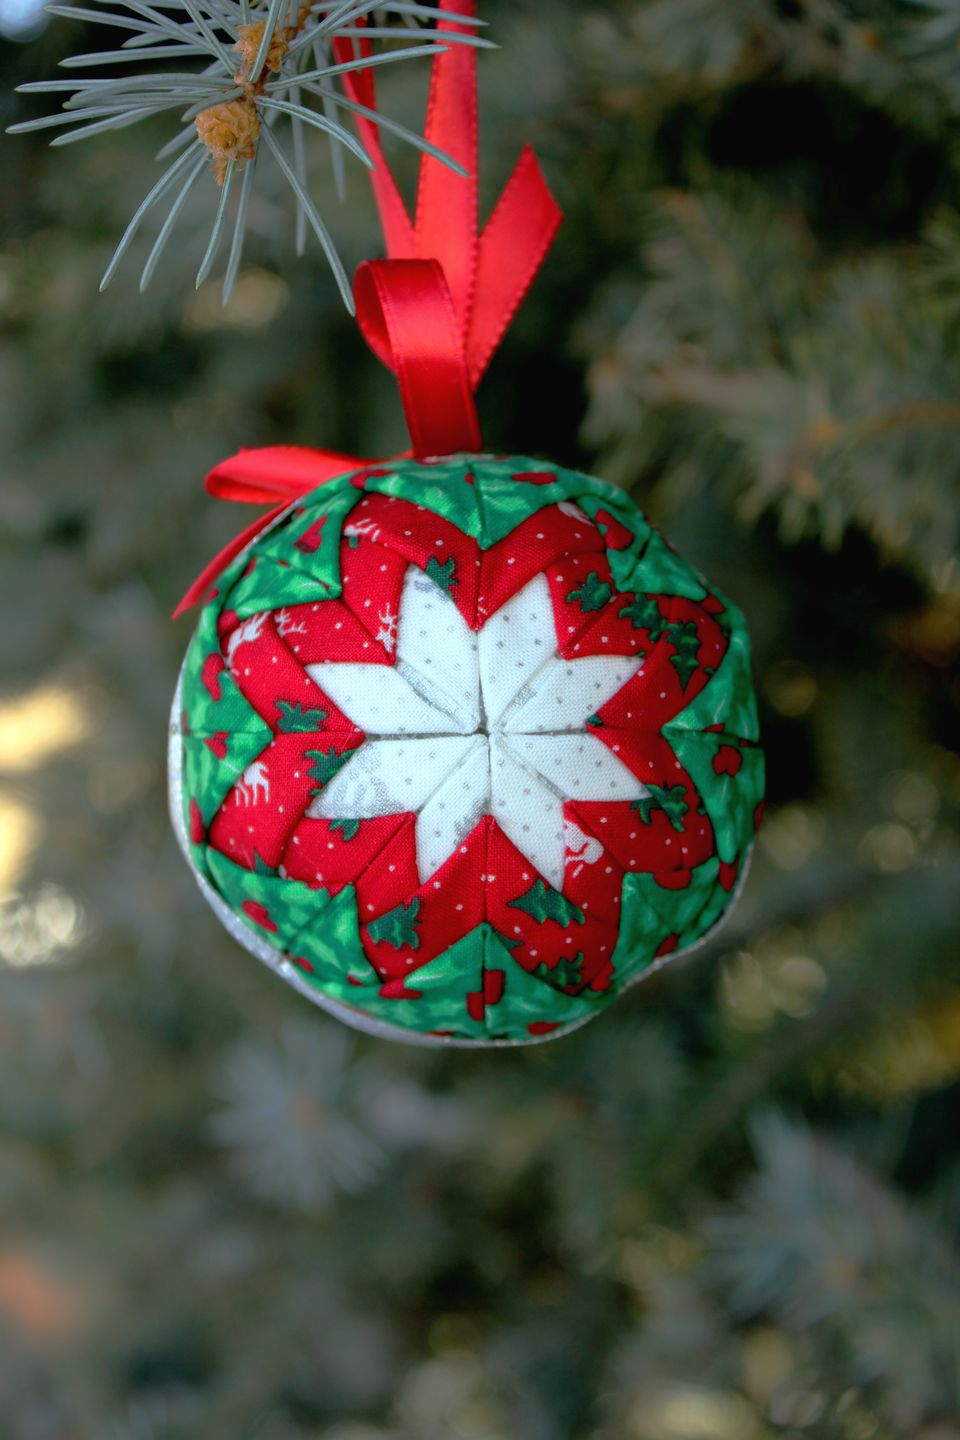 A quilted ornament hanging in a Christmas tree